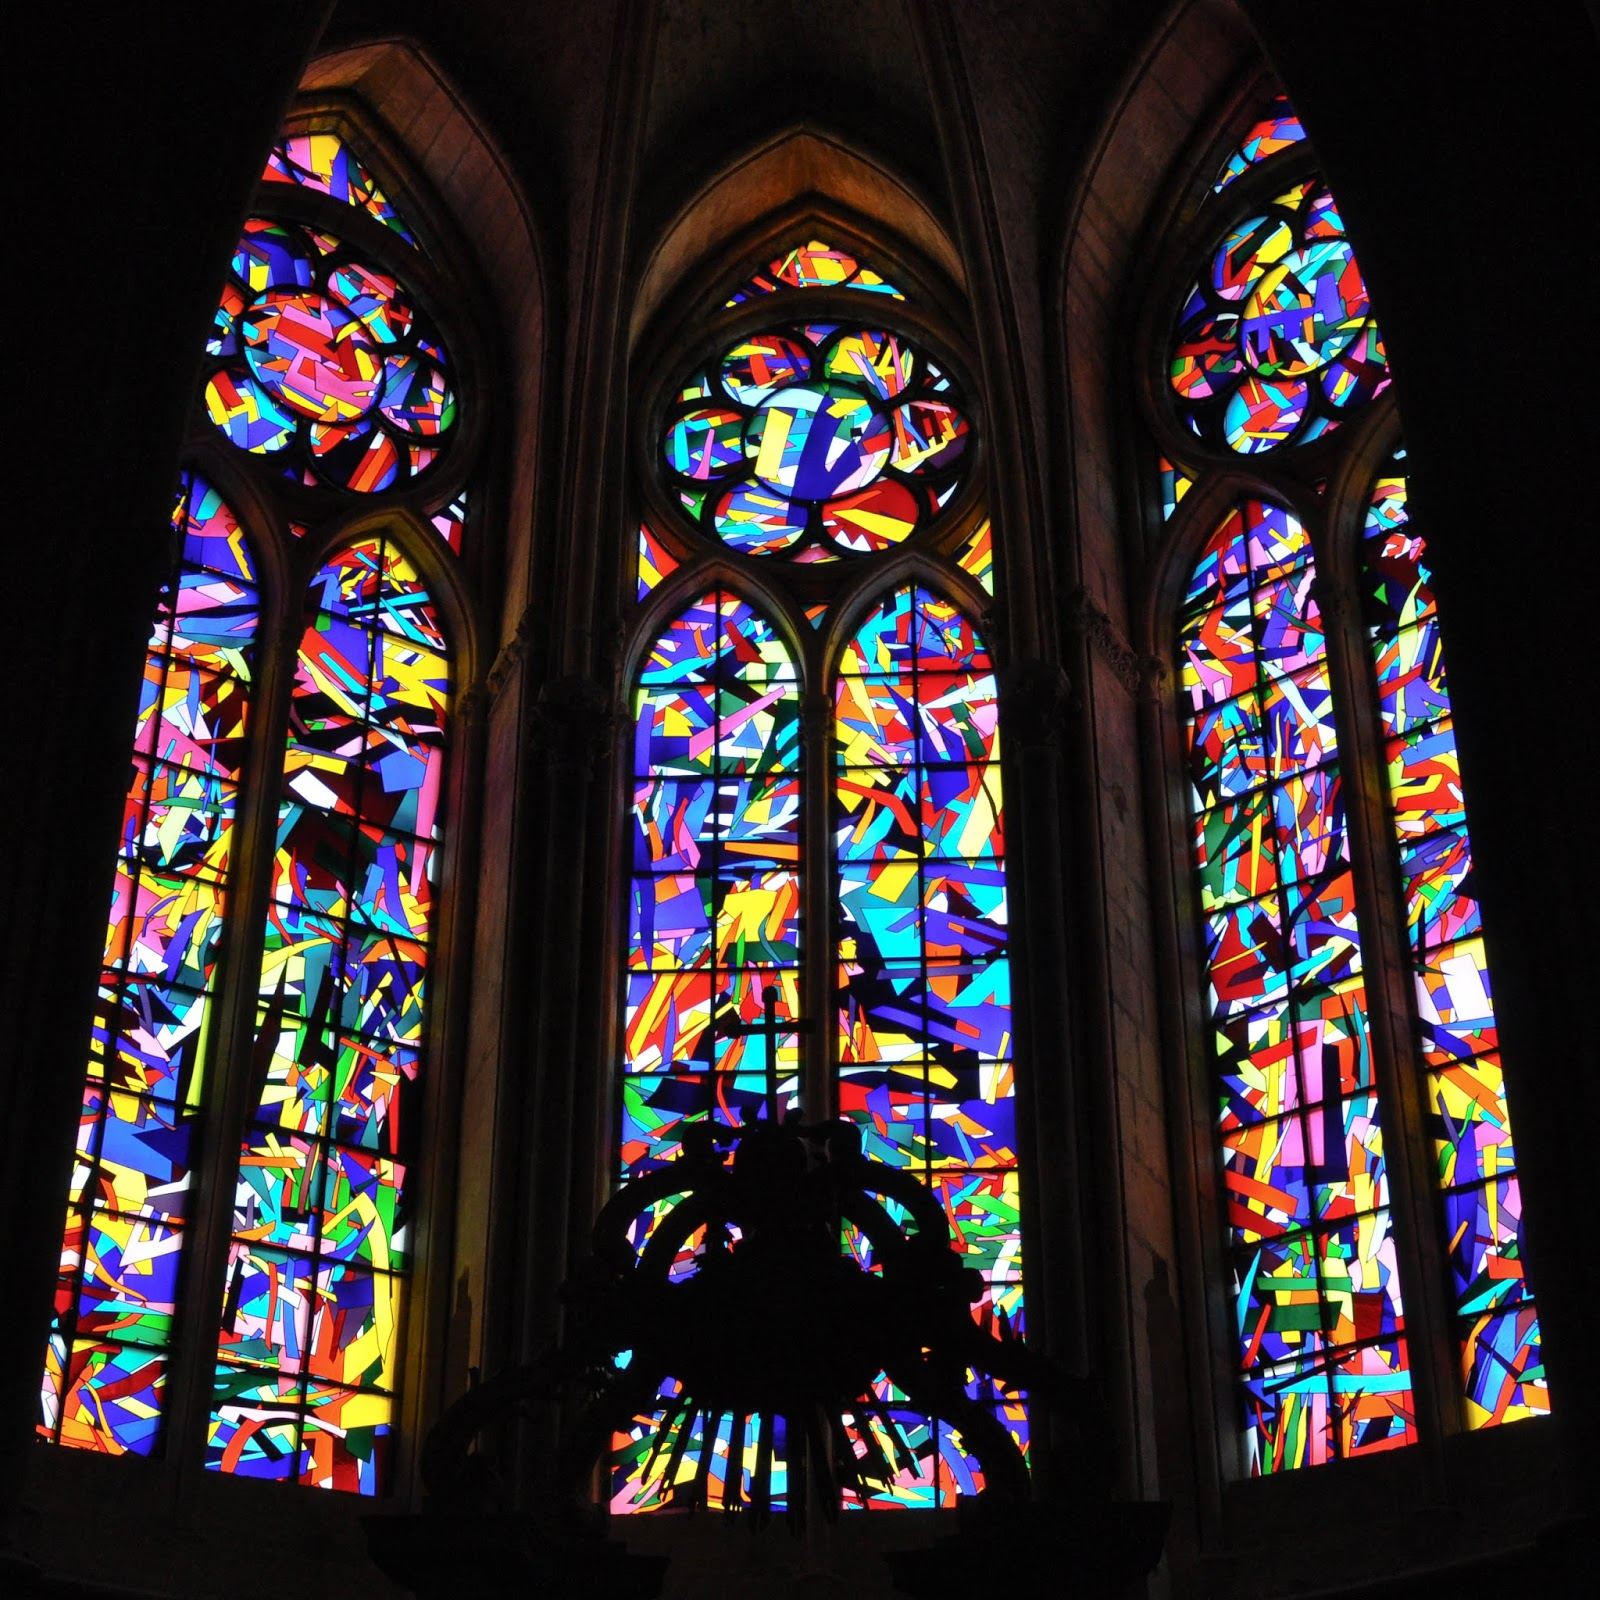 Stained glass windows, Reims Cathedral, Reims, France